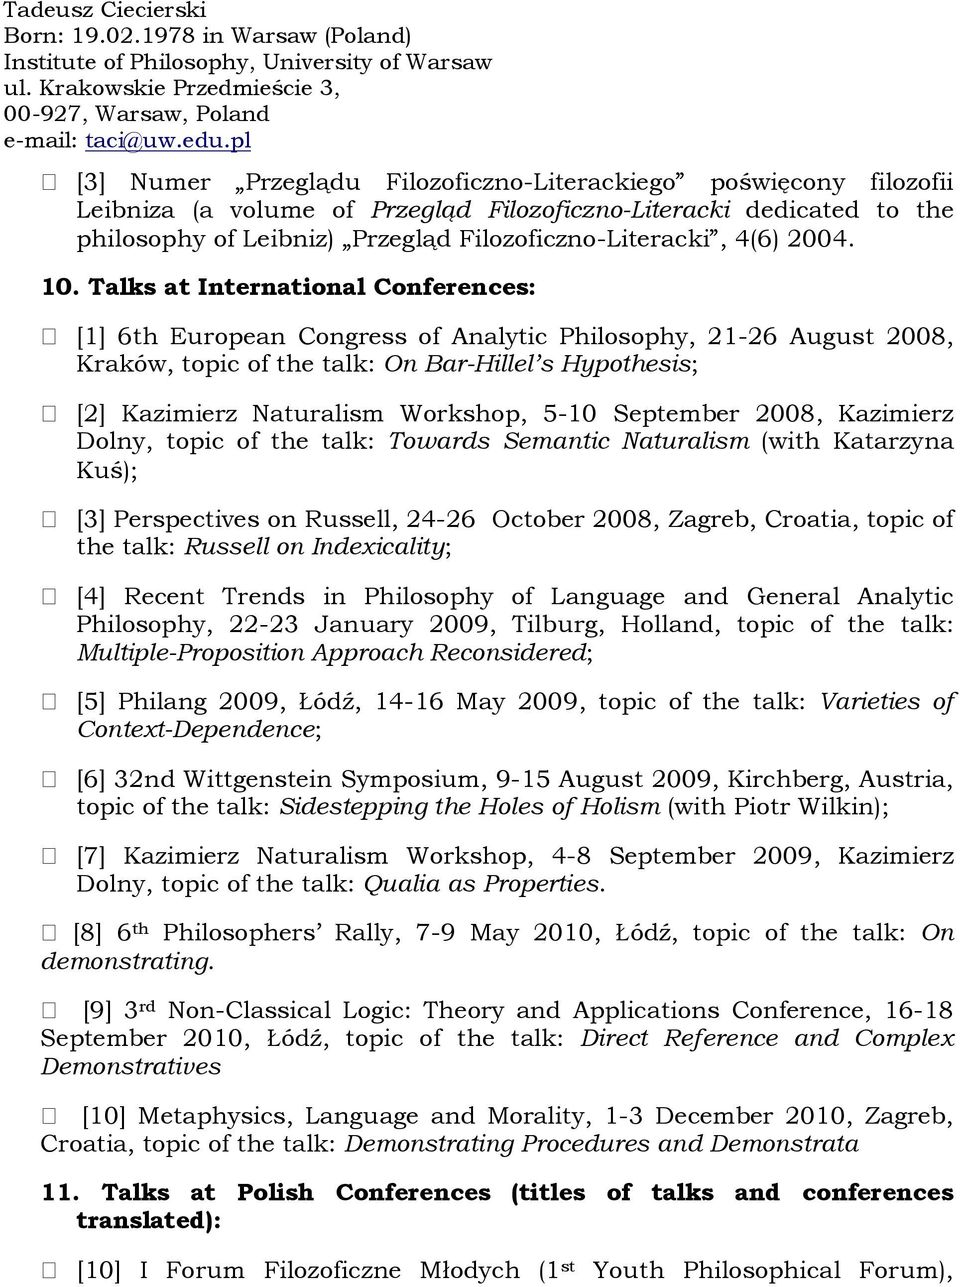 Talks at International Conferences: [1] 6th European Congress of Analytic Philosophy, 21-26 August 2008, Kraków, topic of the talk: On Bar-Hillel s Hypothesis; [2] Kazimierz Naturalism Workshop, 5-10